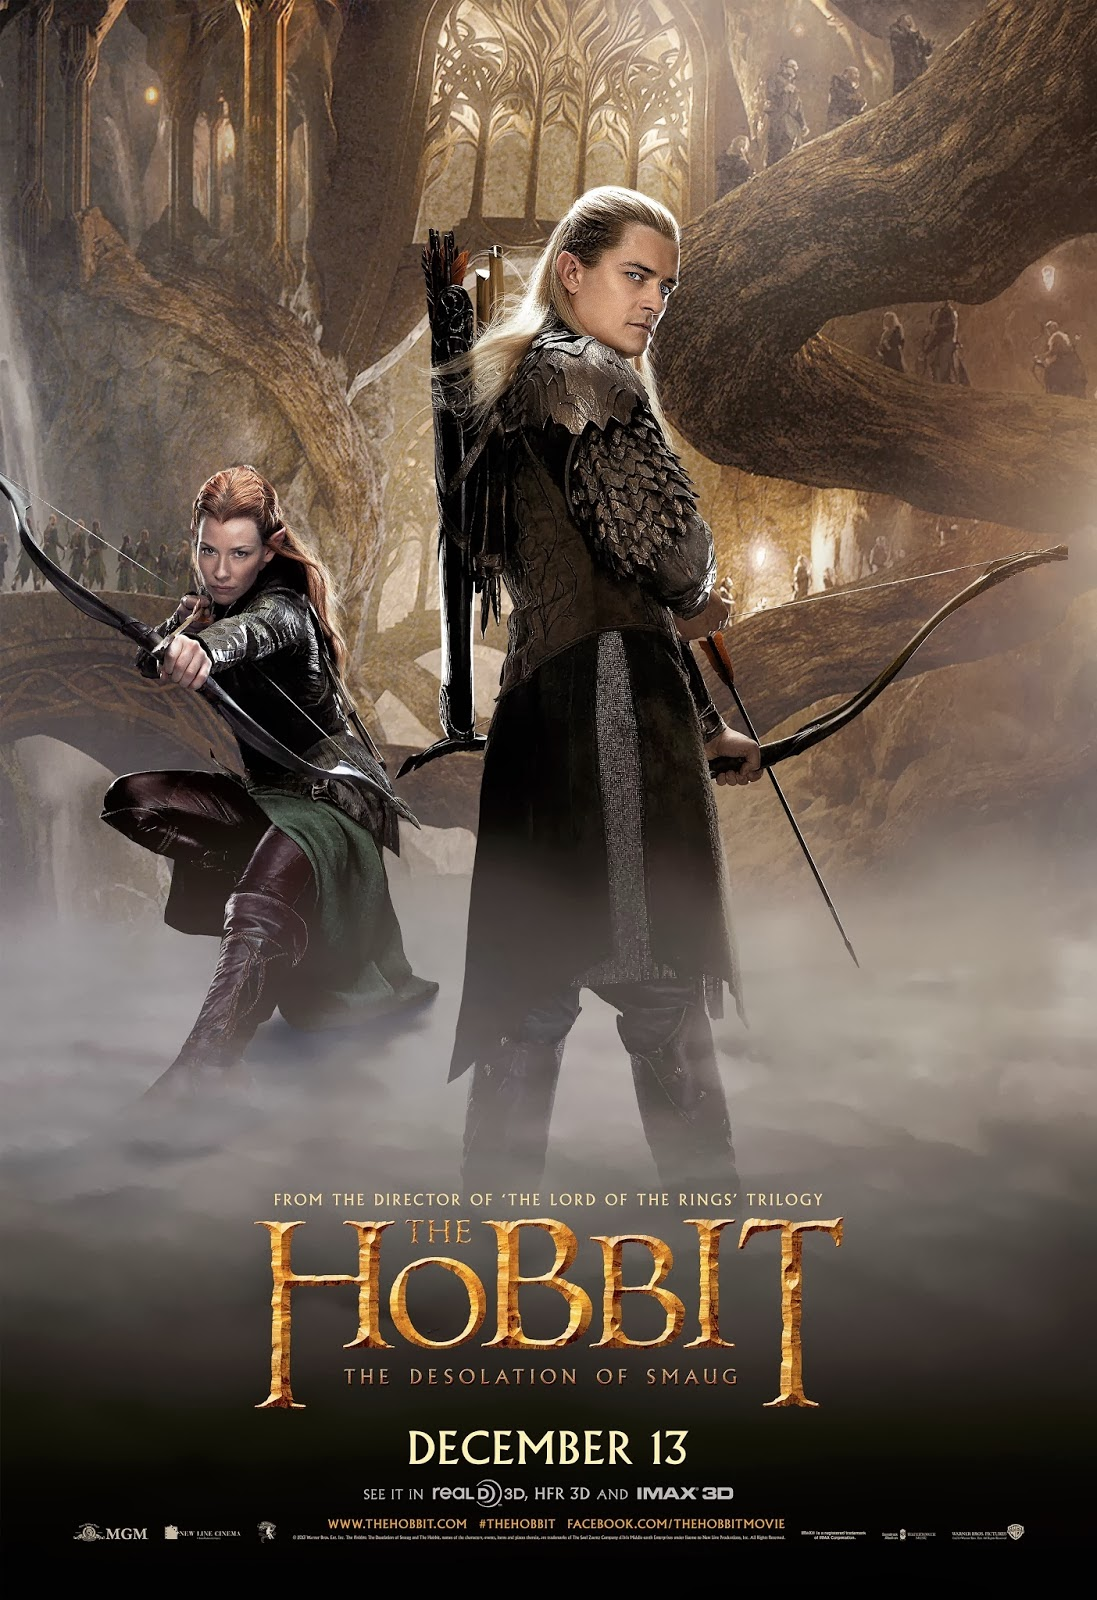 http://2.bp.blogspot.com/-2v_5S3665Vs/UnmqTEhVchI/AAAAAAAARlU/ZVnc0-WDghw/s1600/The_Hobbit_The_Desolation_Of_Smaug_New_Poster_JPosters.jpg